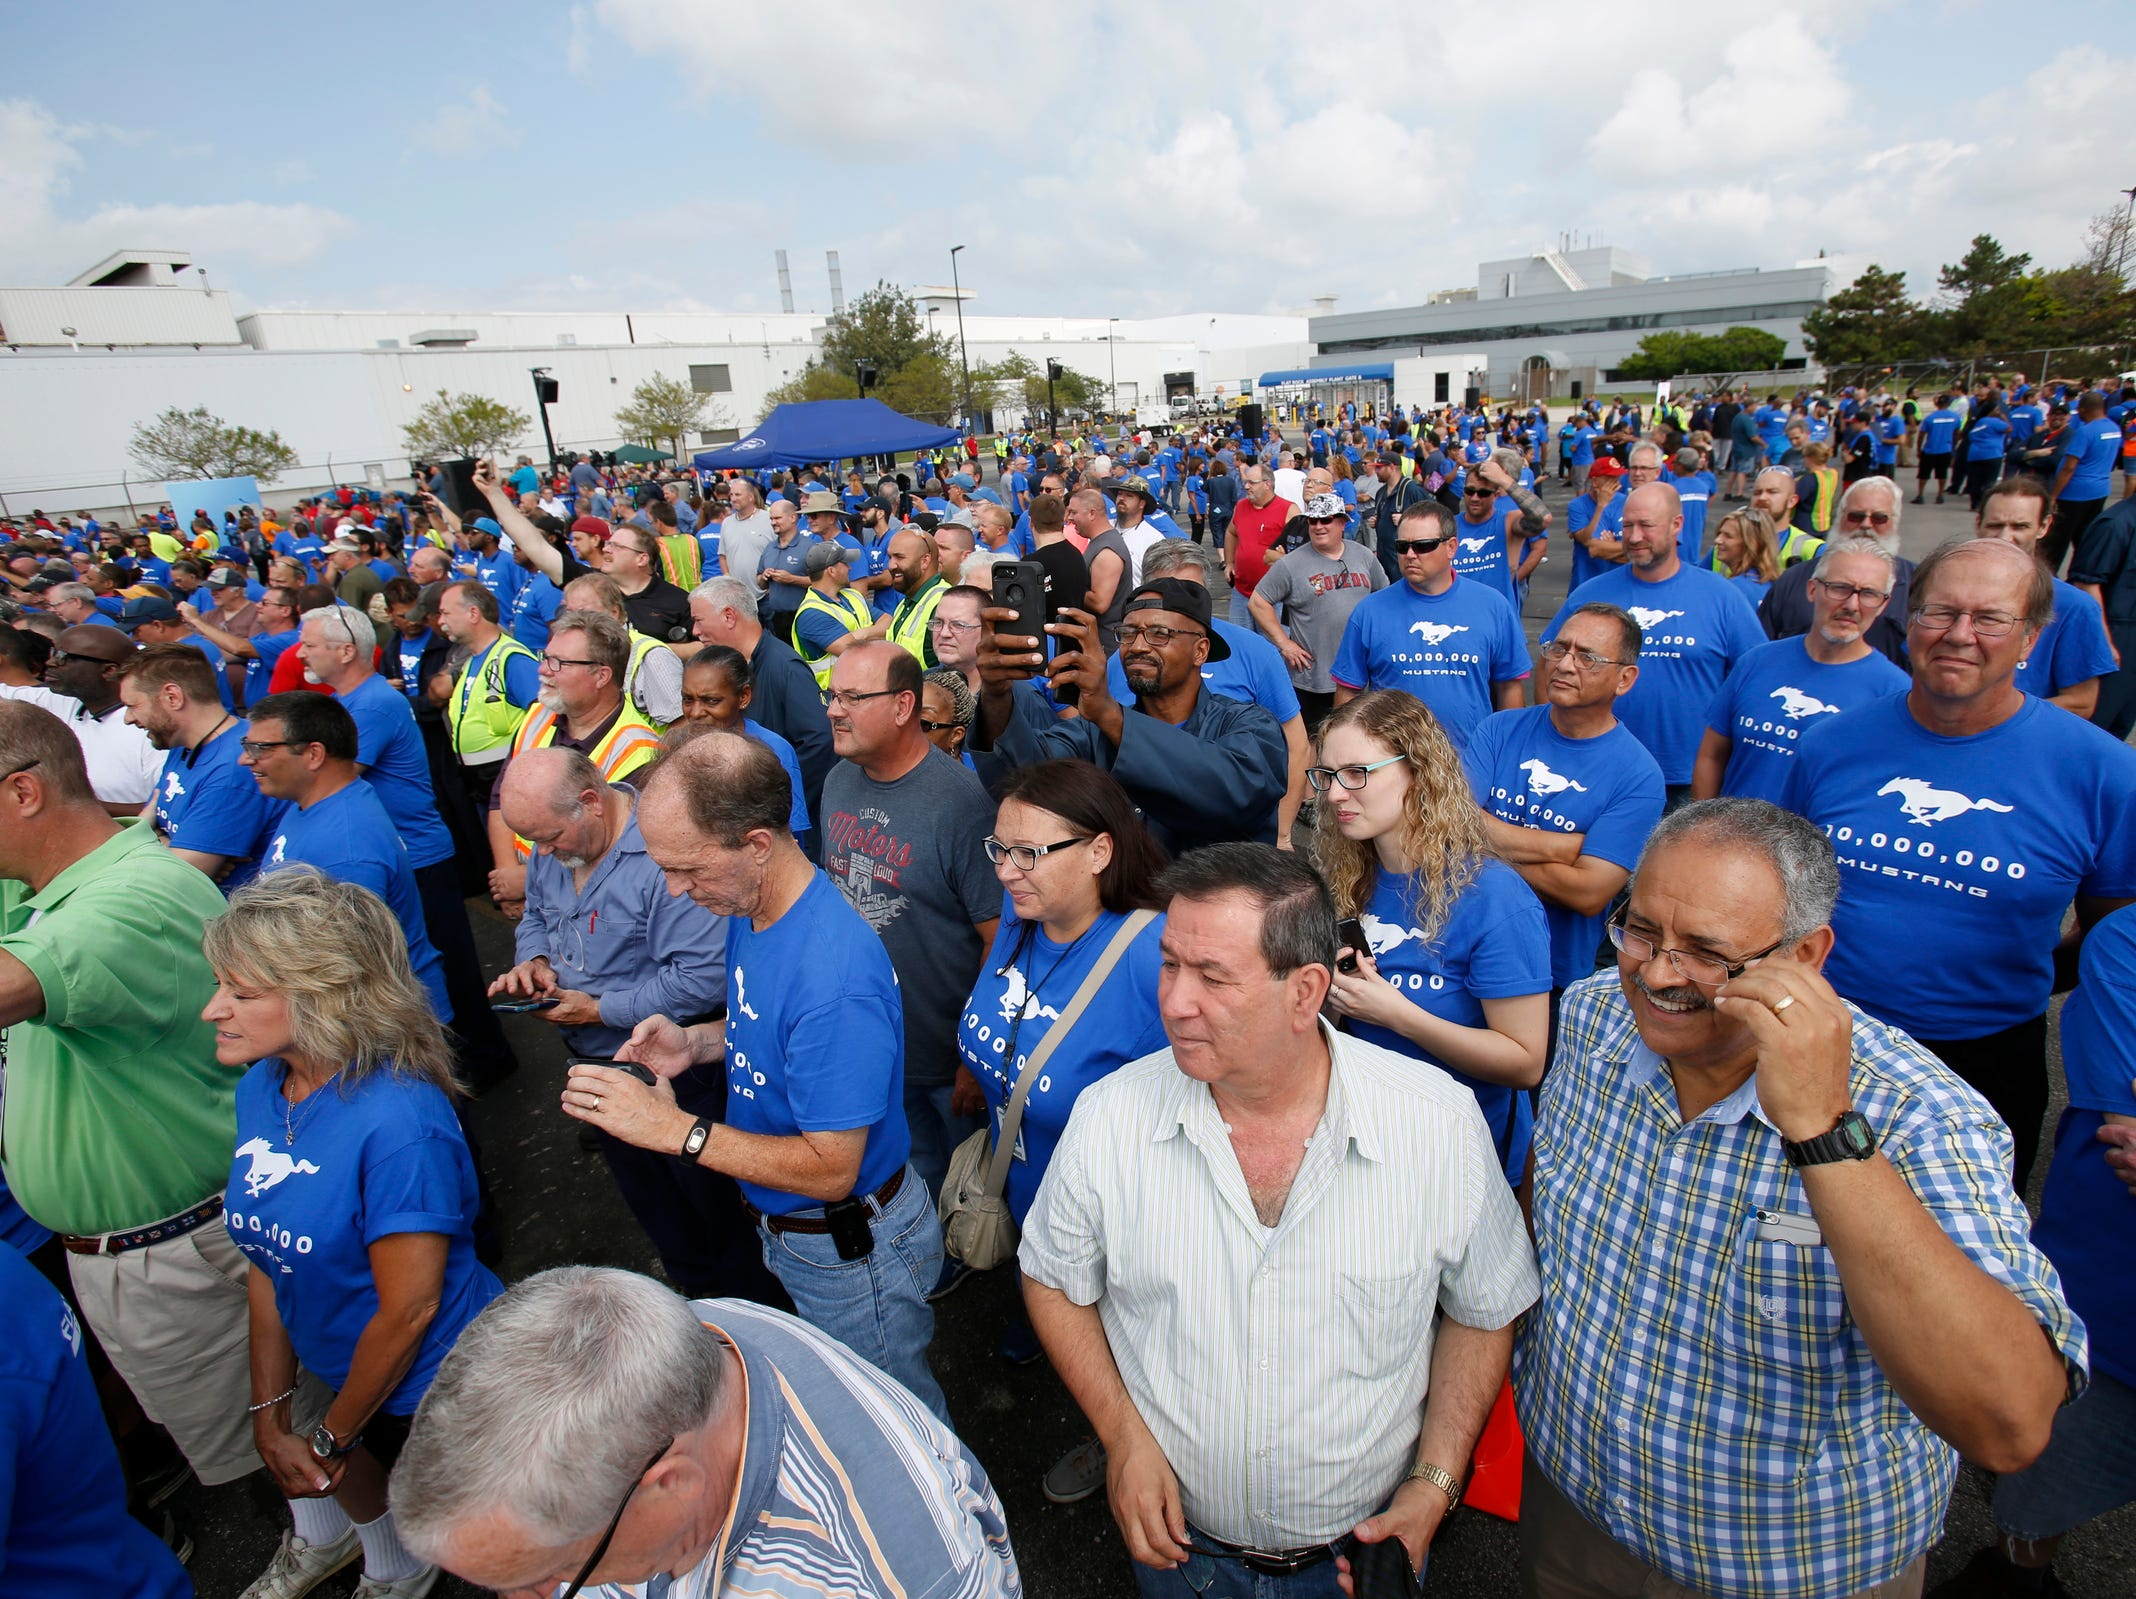 Flat Rock Assembly workers watch as a Mustang parade moves onto the parking lot during the celebration of the 10 millionth Mustang at the Ford Motor Company Flat Rock Assembly Plant in Flat Rock on Wednesday, August 8, 2018